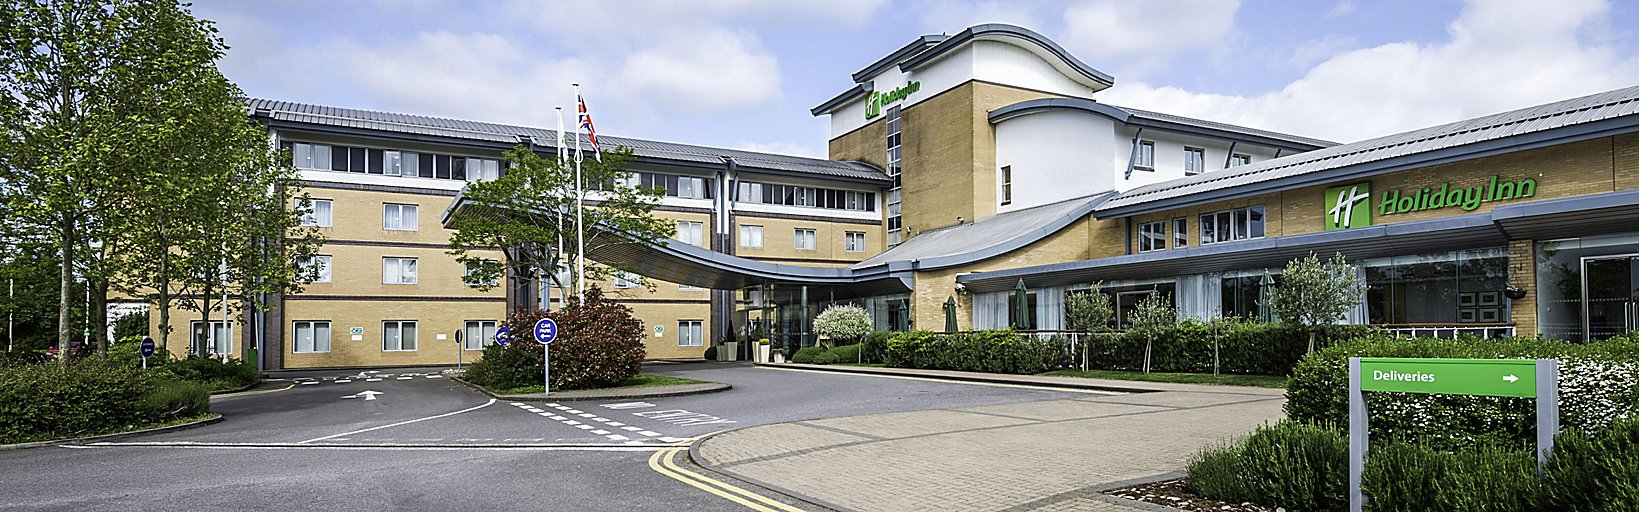 Hotels Near Oxford Parkway Station: Holiday Inn Oxford